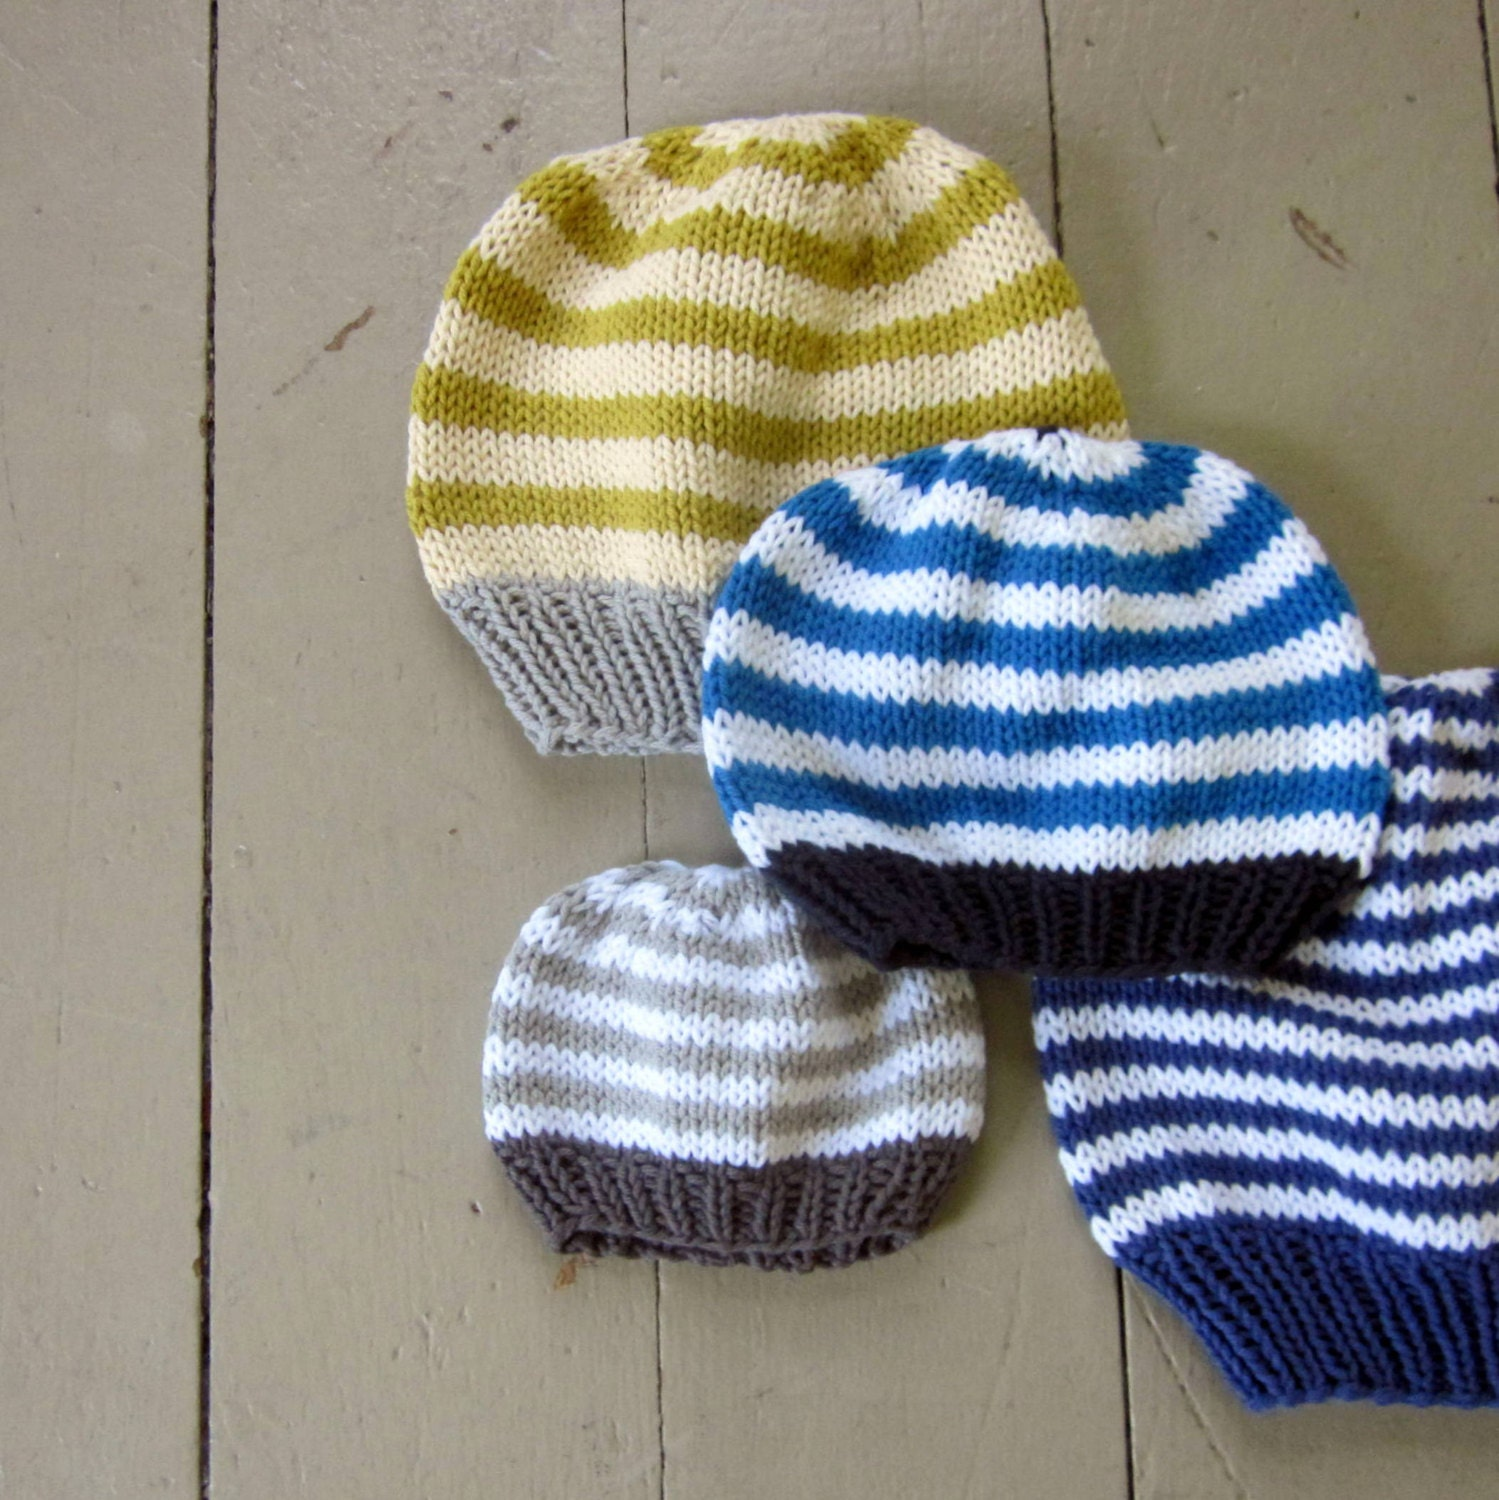 Easy Knitting Patterns For Toddler Hats : Pattern basic hat knitting pattern PDF knitted hat pattern: